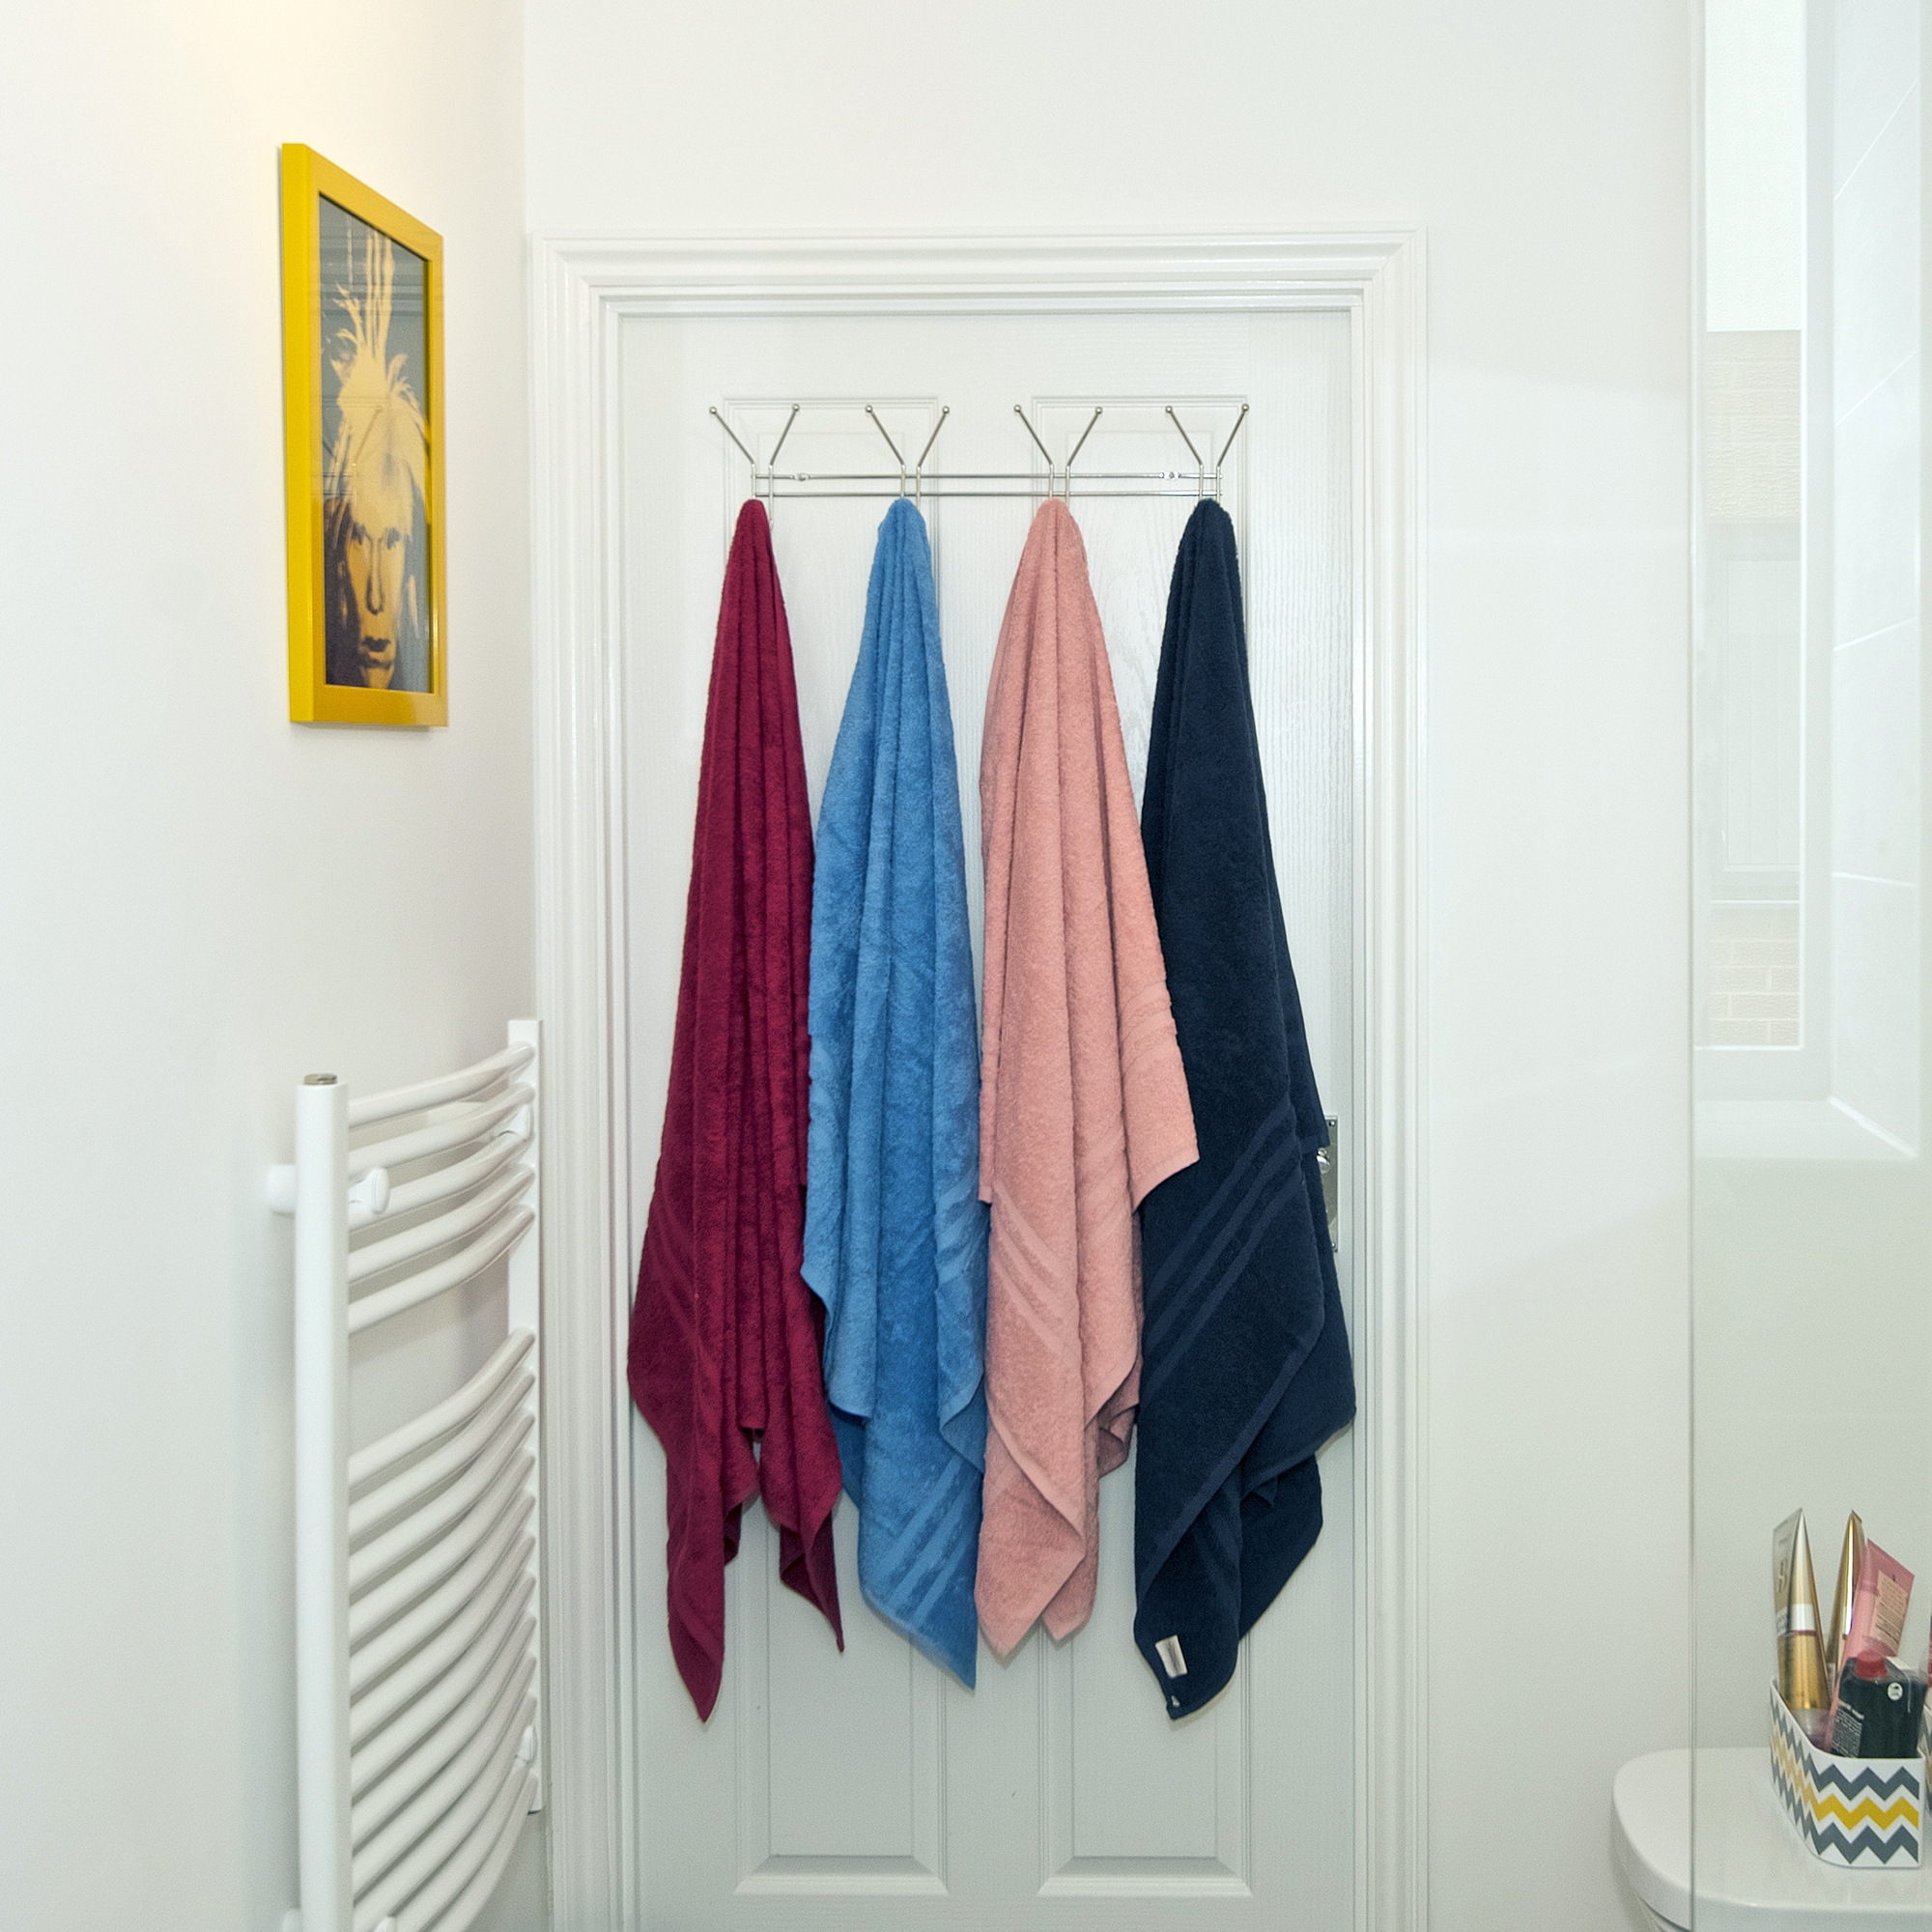 a close up of towels hanging on a wall